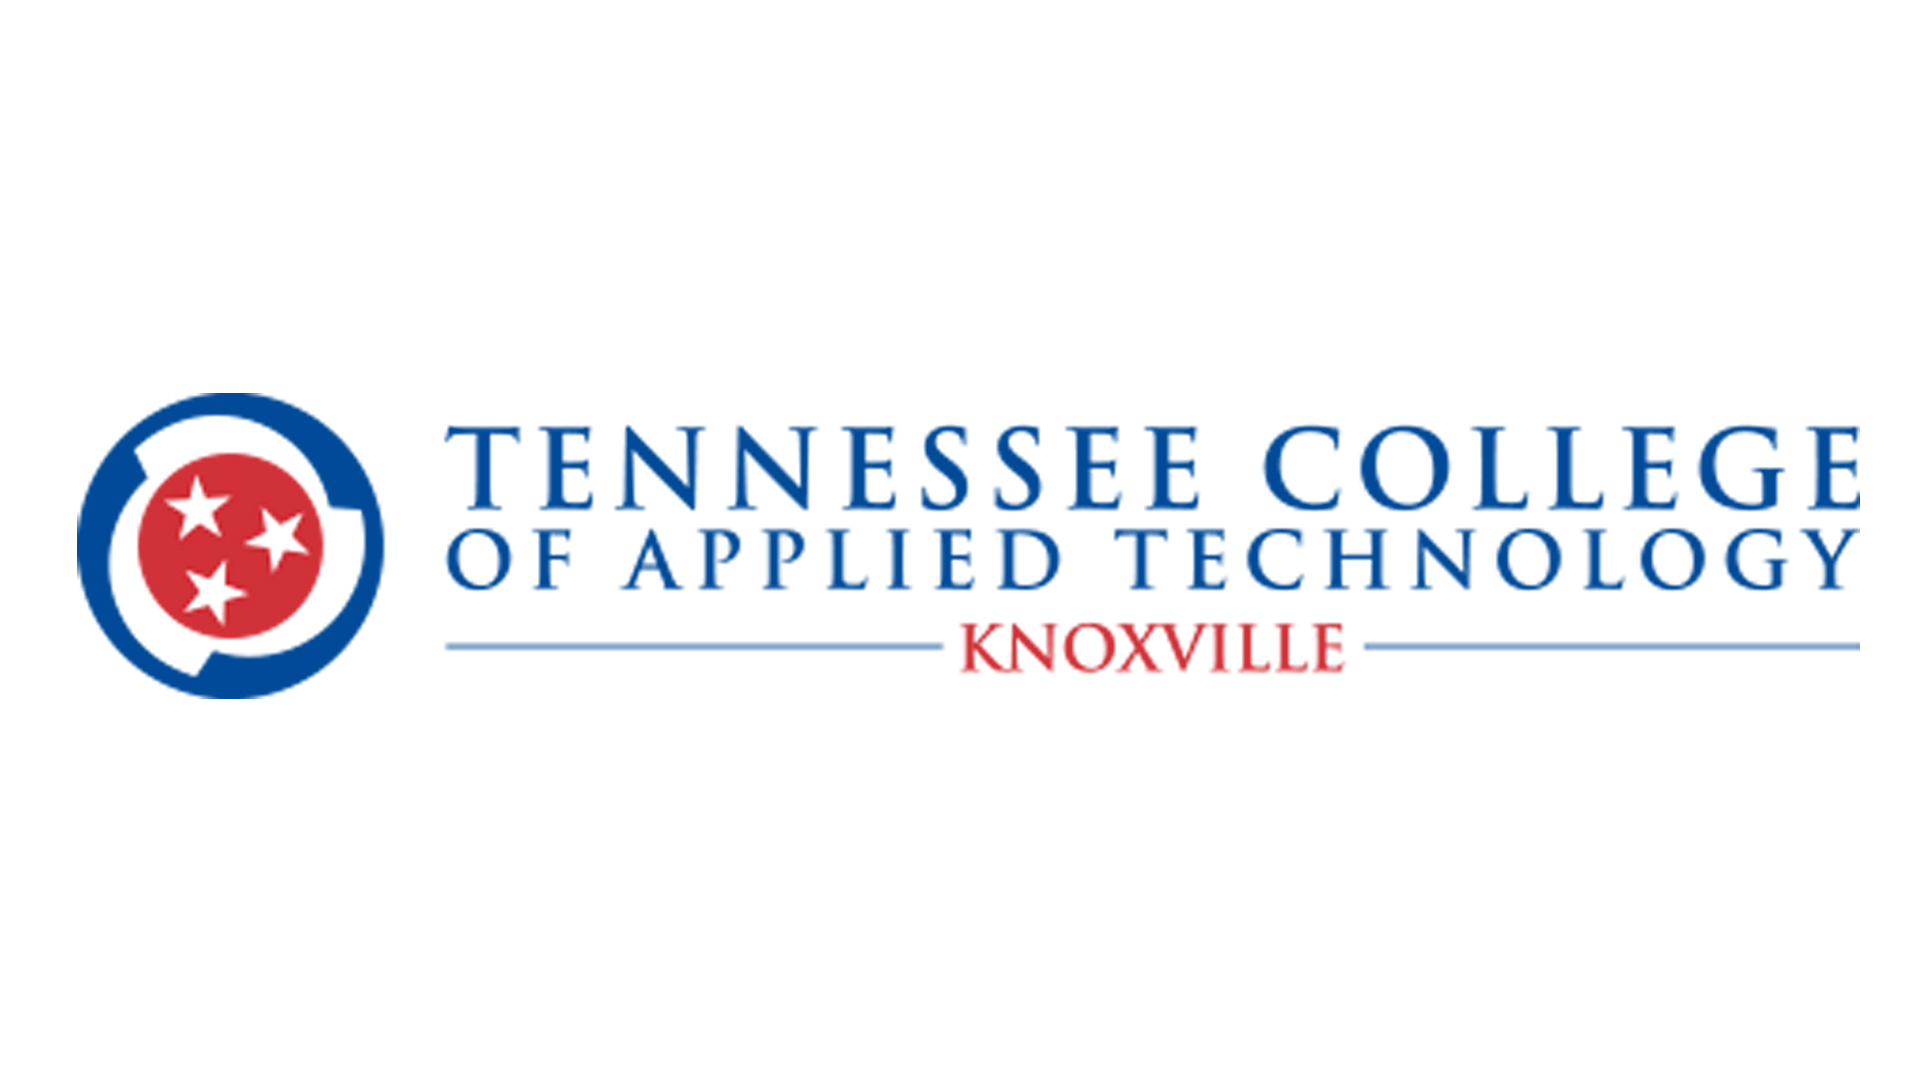 TN college of applied technology